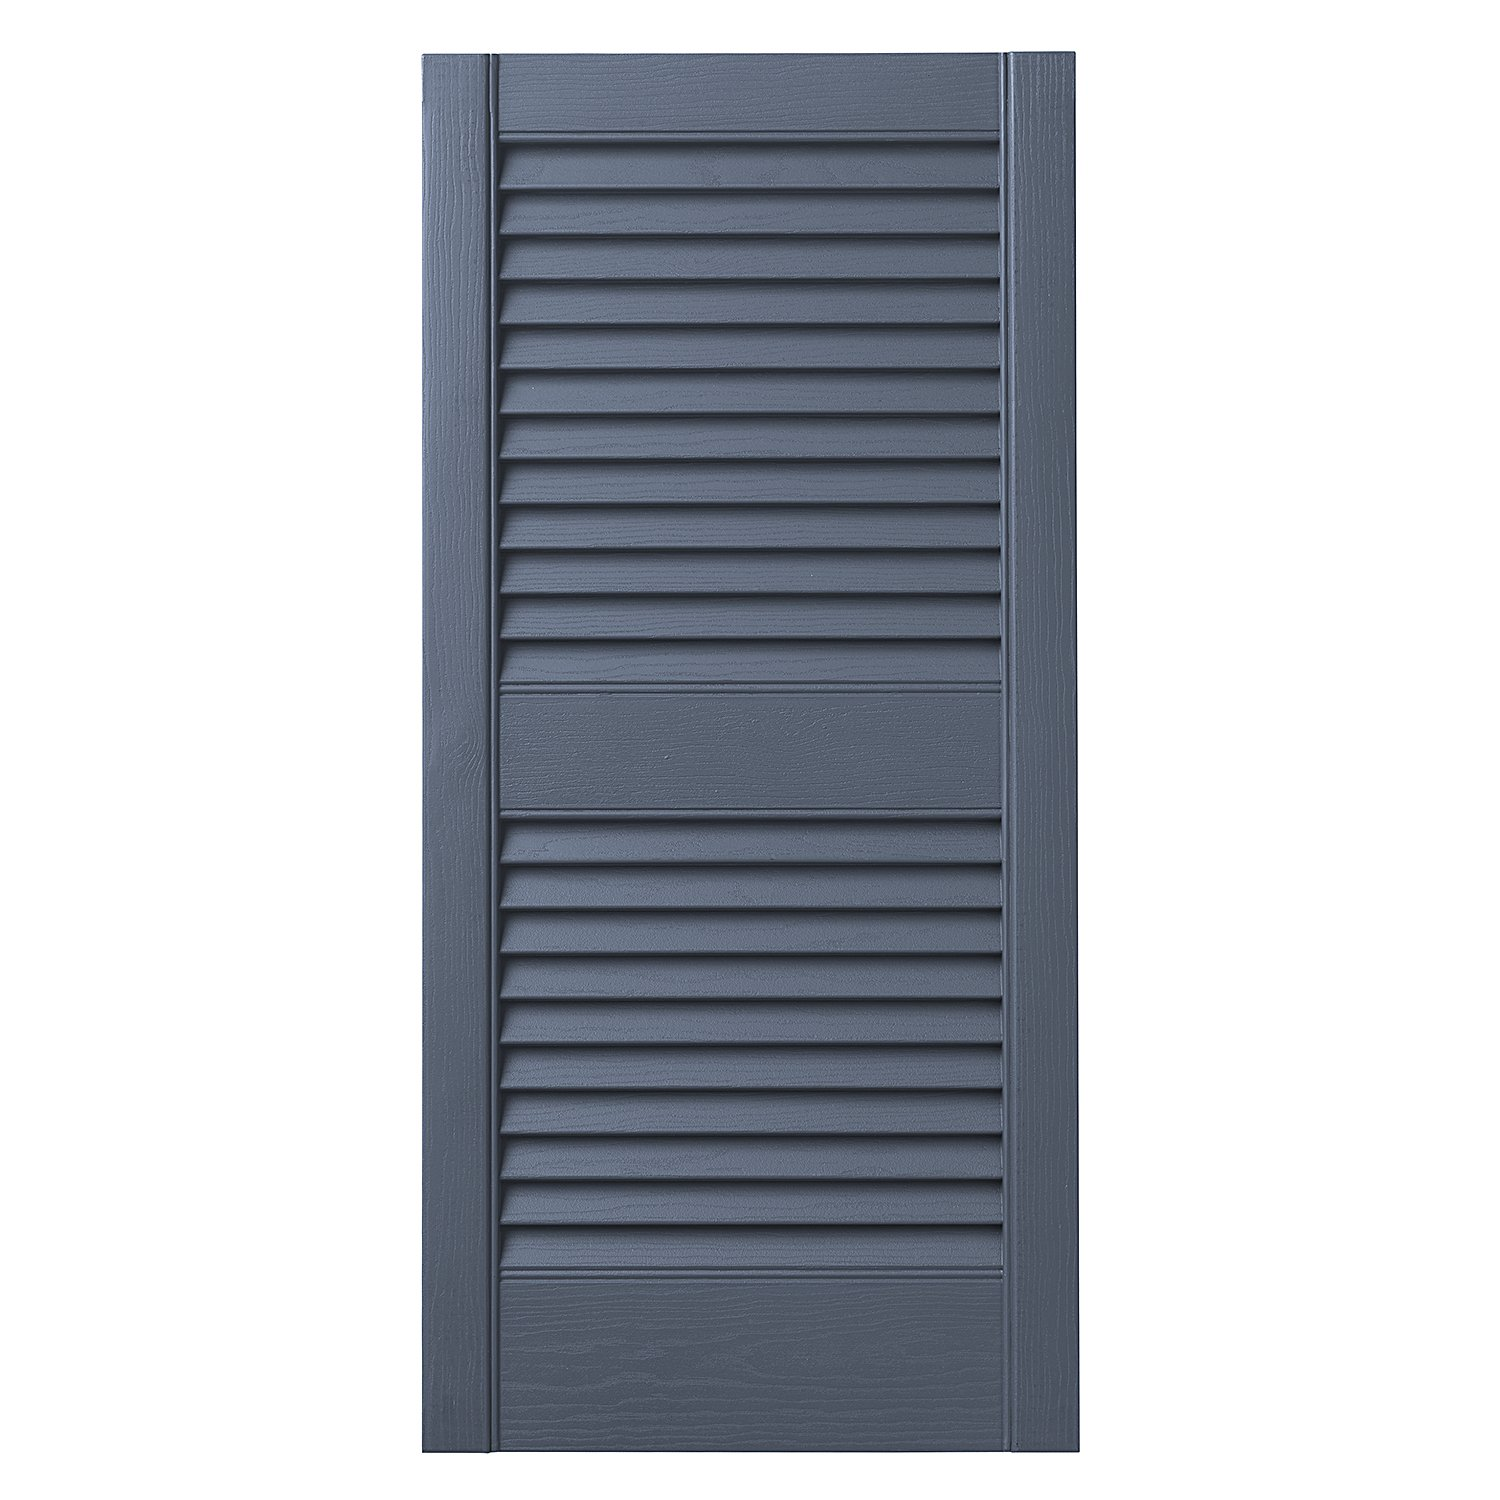 Ply Gem Shutters and Accents VINLV1525 41 Louvered